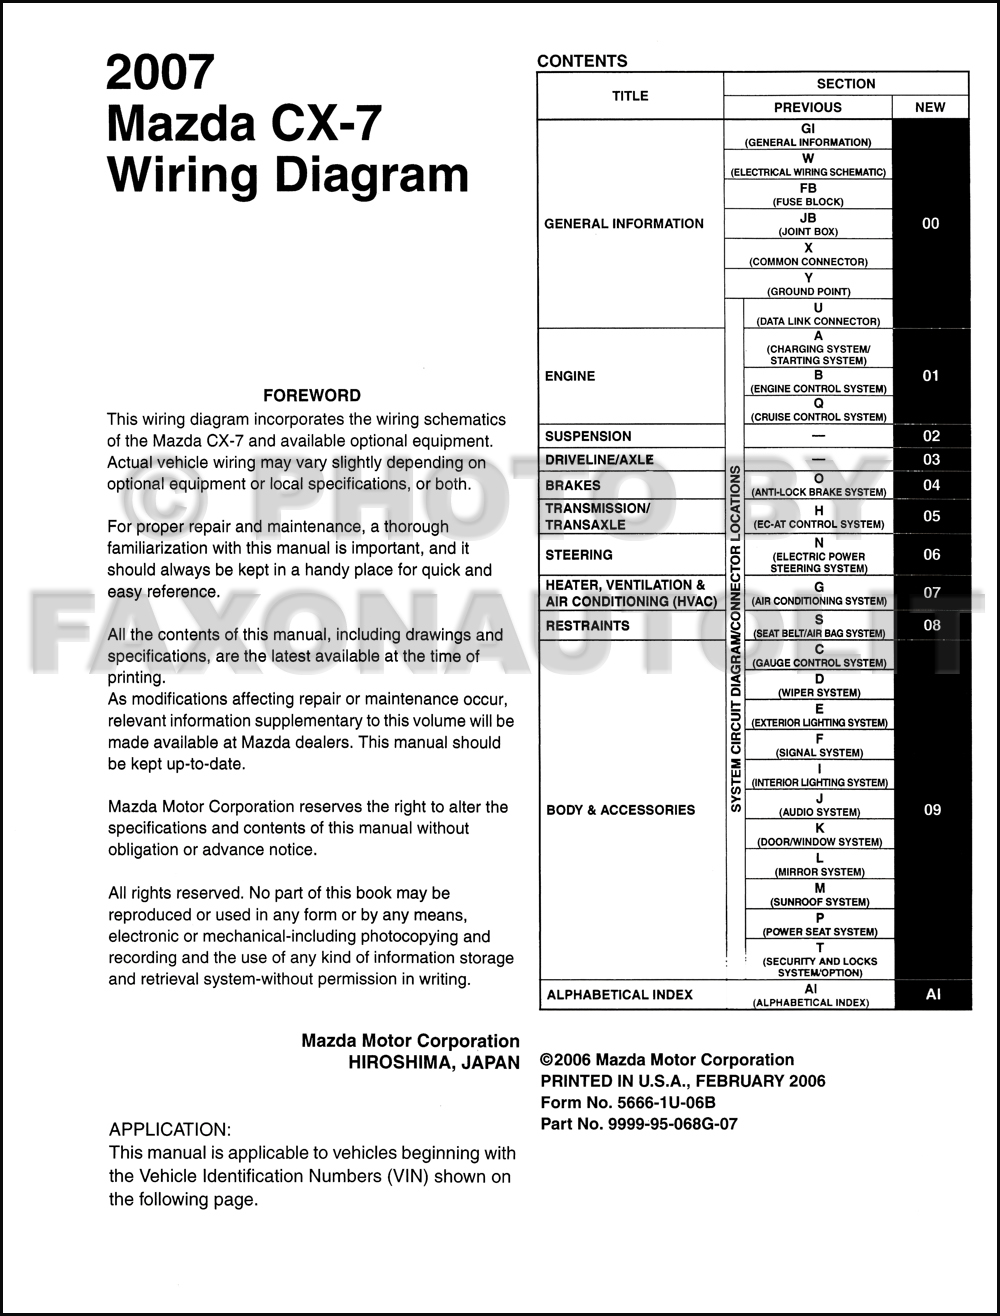 2007 mazda cx 7 wiring diagram manual original asfbconference2016 Choice Image